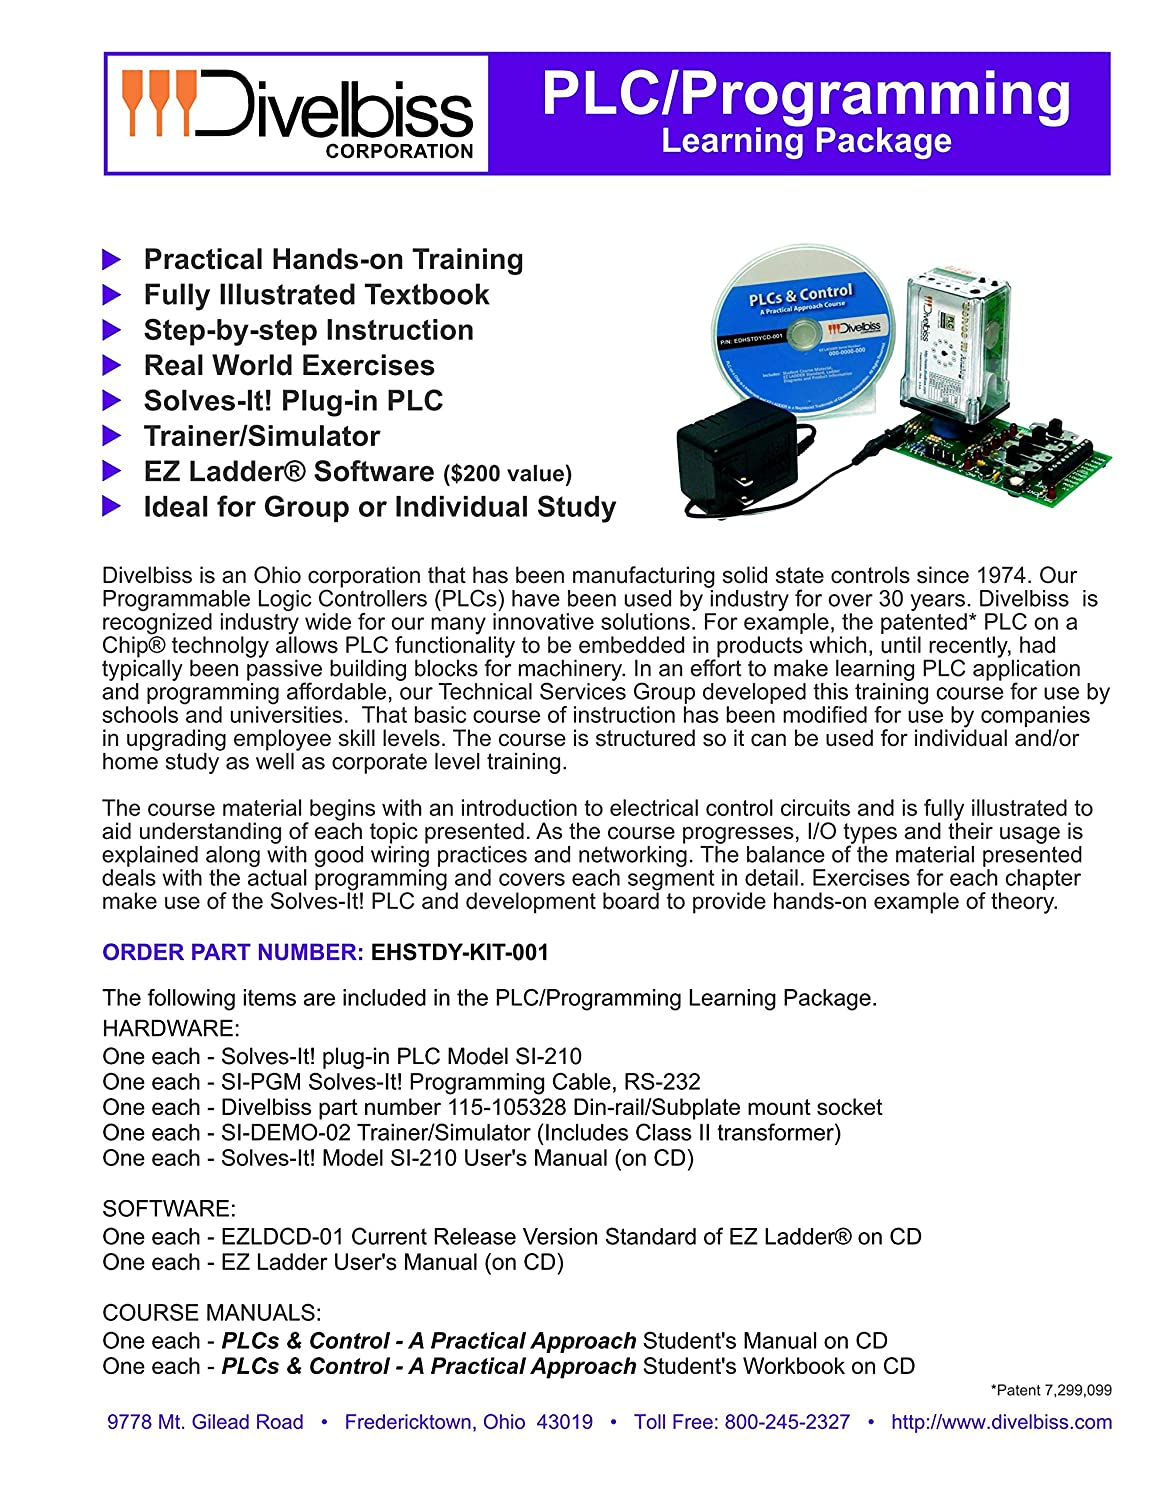 Plc Study Course Student Kit High Voltage Yard Training Simulator